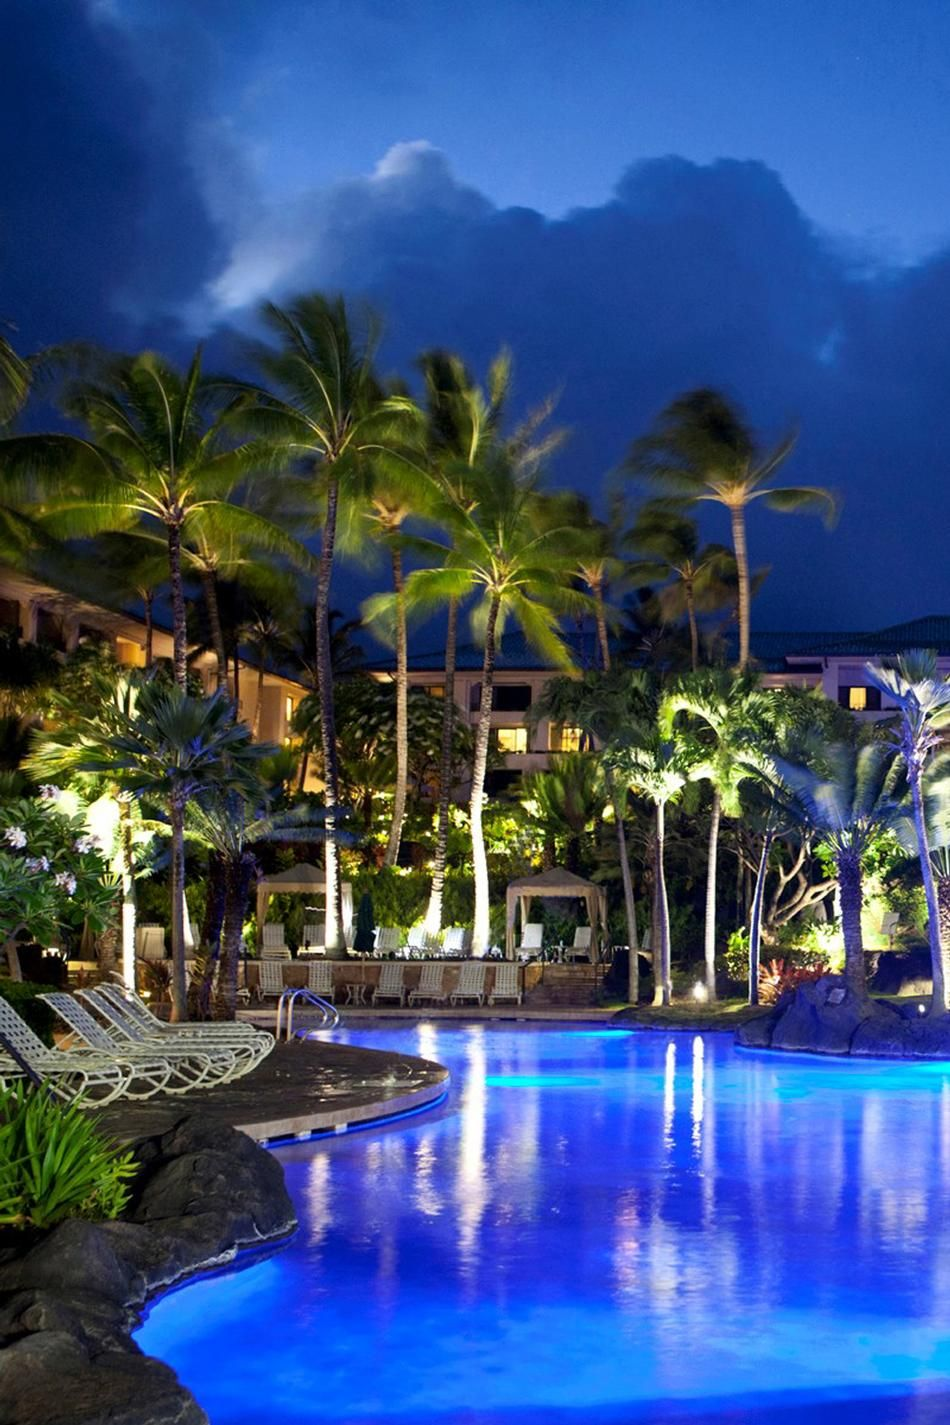 Grand Hyatt Kauai Resort Spa Hawaii One Of The Most Beautiful Places I Ve Ever Stayed